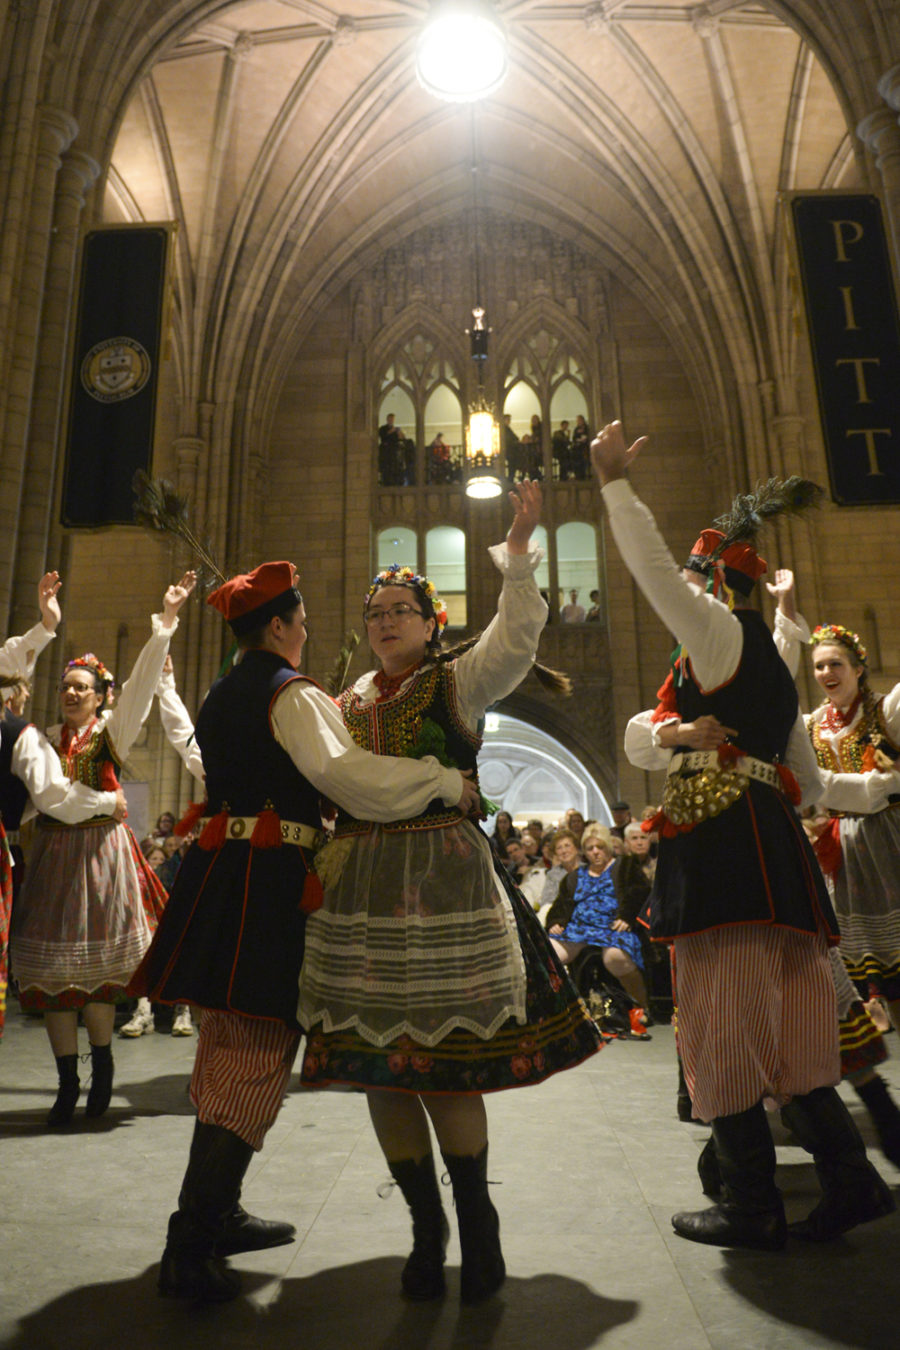 Lajkoniki dancers from Holy Family Catholic Church perform traditional Polish dances during Polishfest in the Cathedral of Learning Commons Room Sunday.